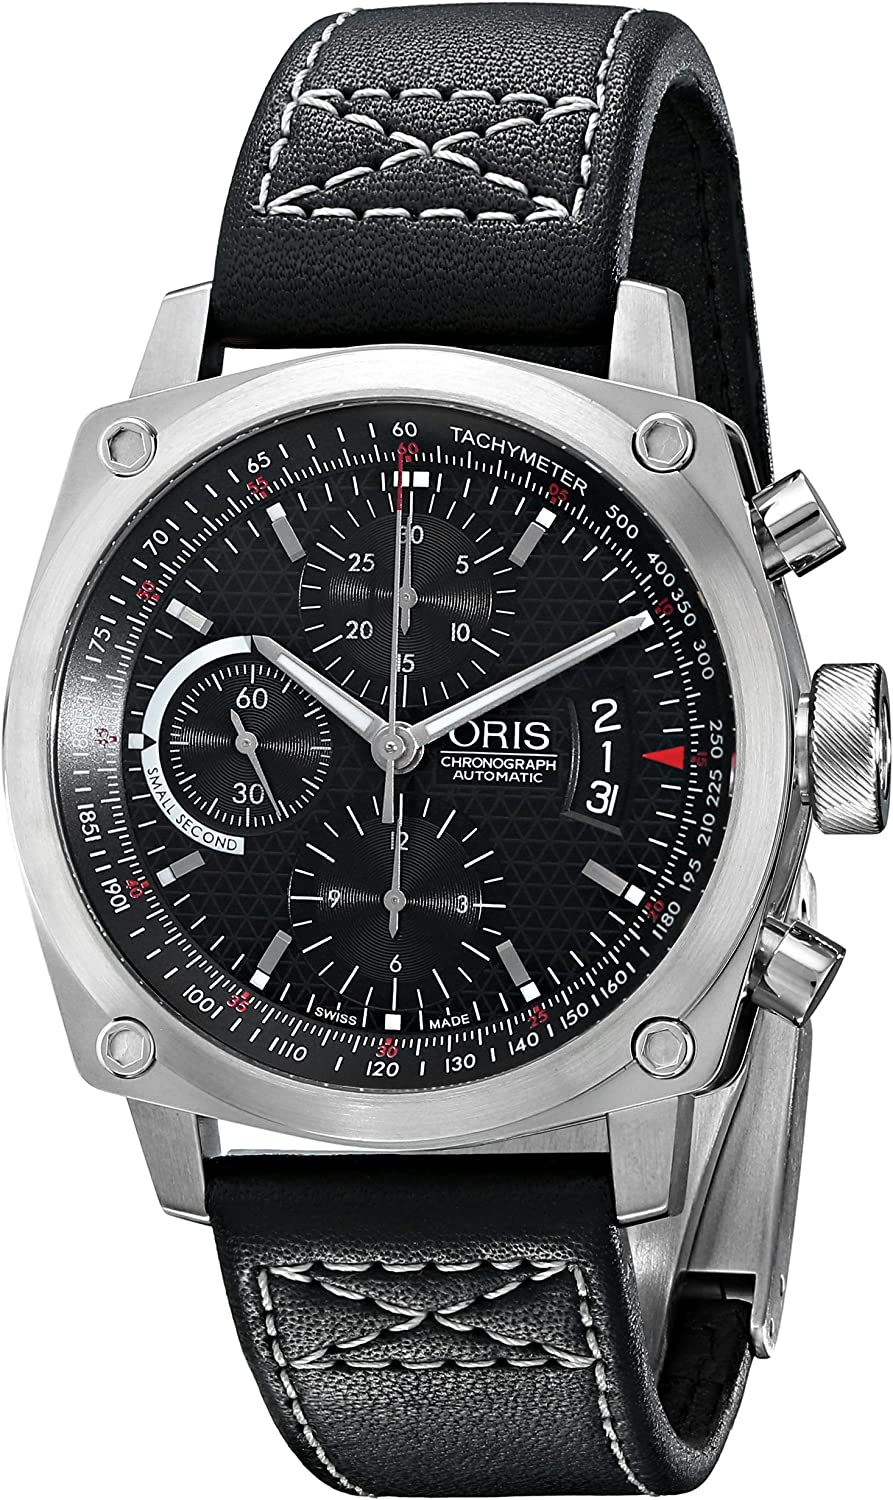 Oris Men's 4154LS BC4 Chronograph Stainless Steel Leather Strap Watch